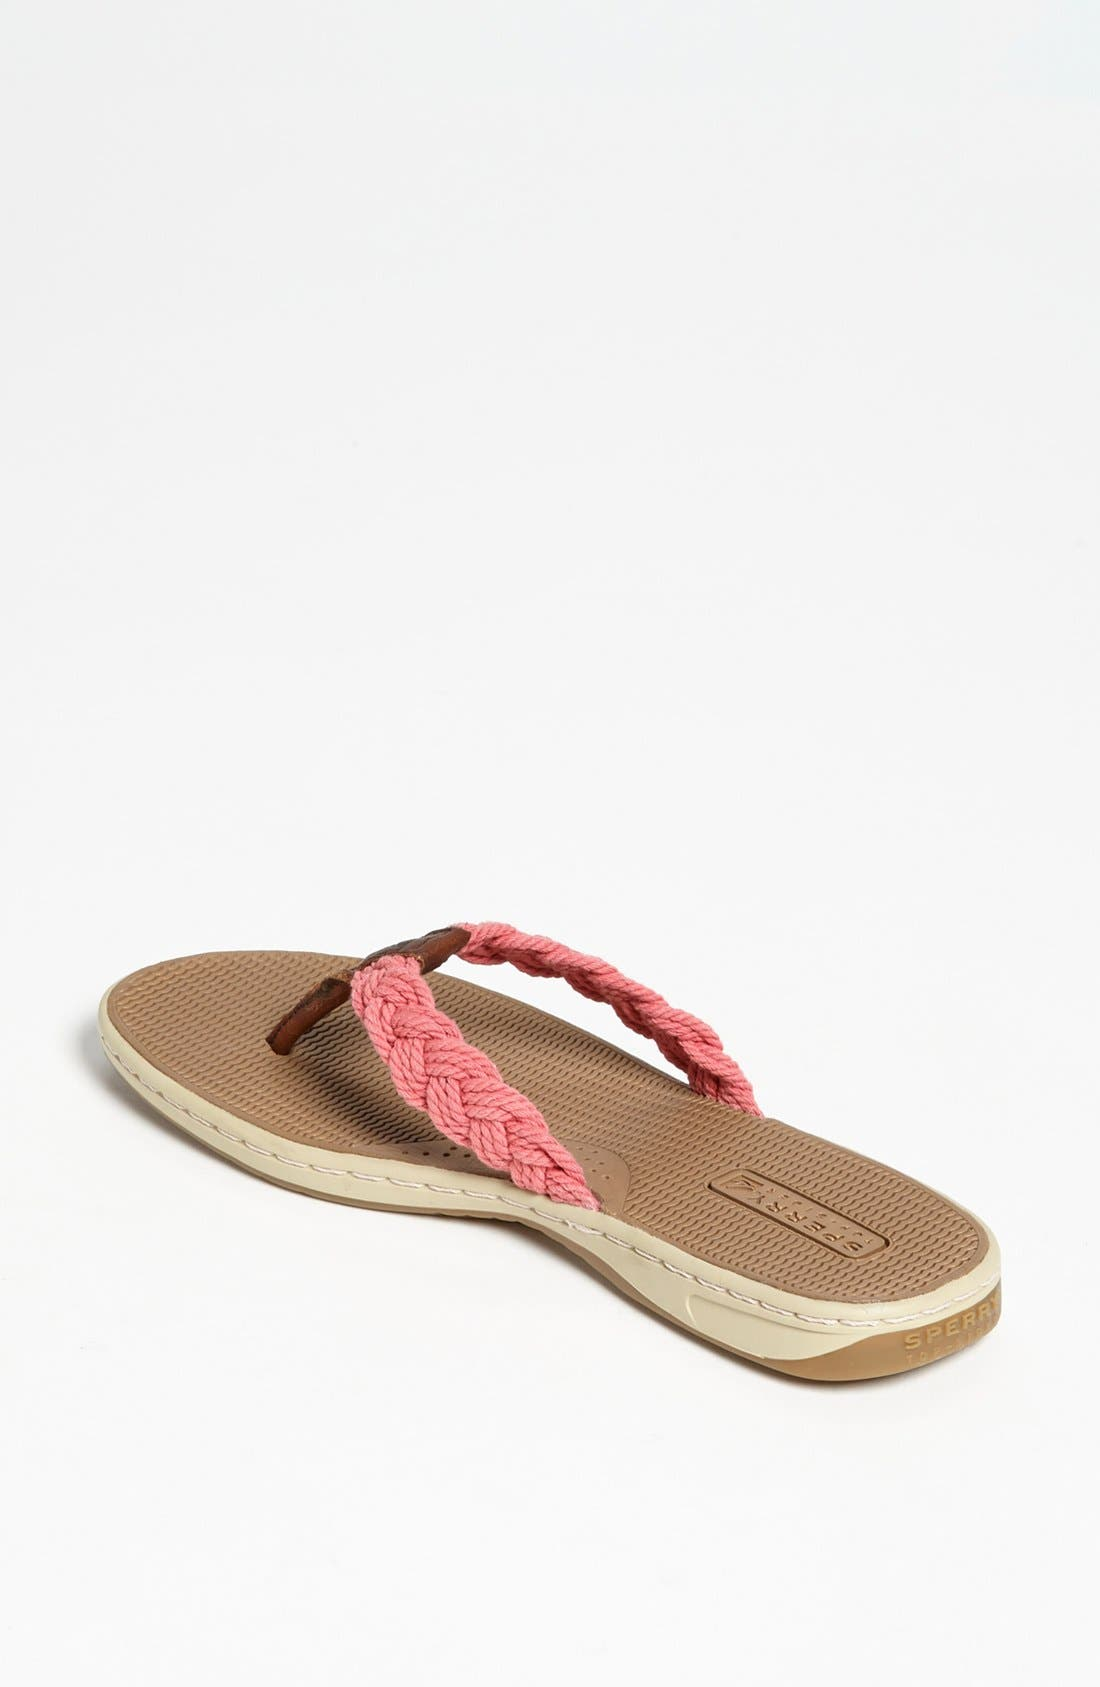 Alternate Image 2  - SPERRY TOP-SIDER TUCKERFISH FLIP FLOP